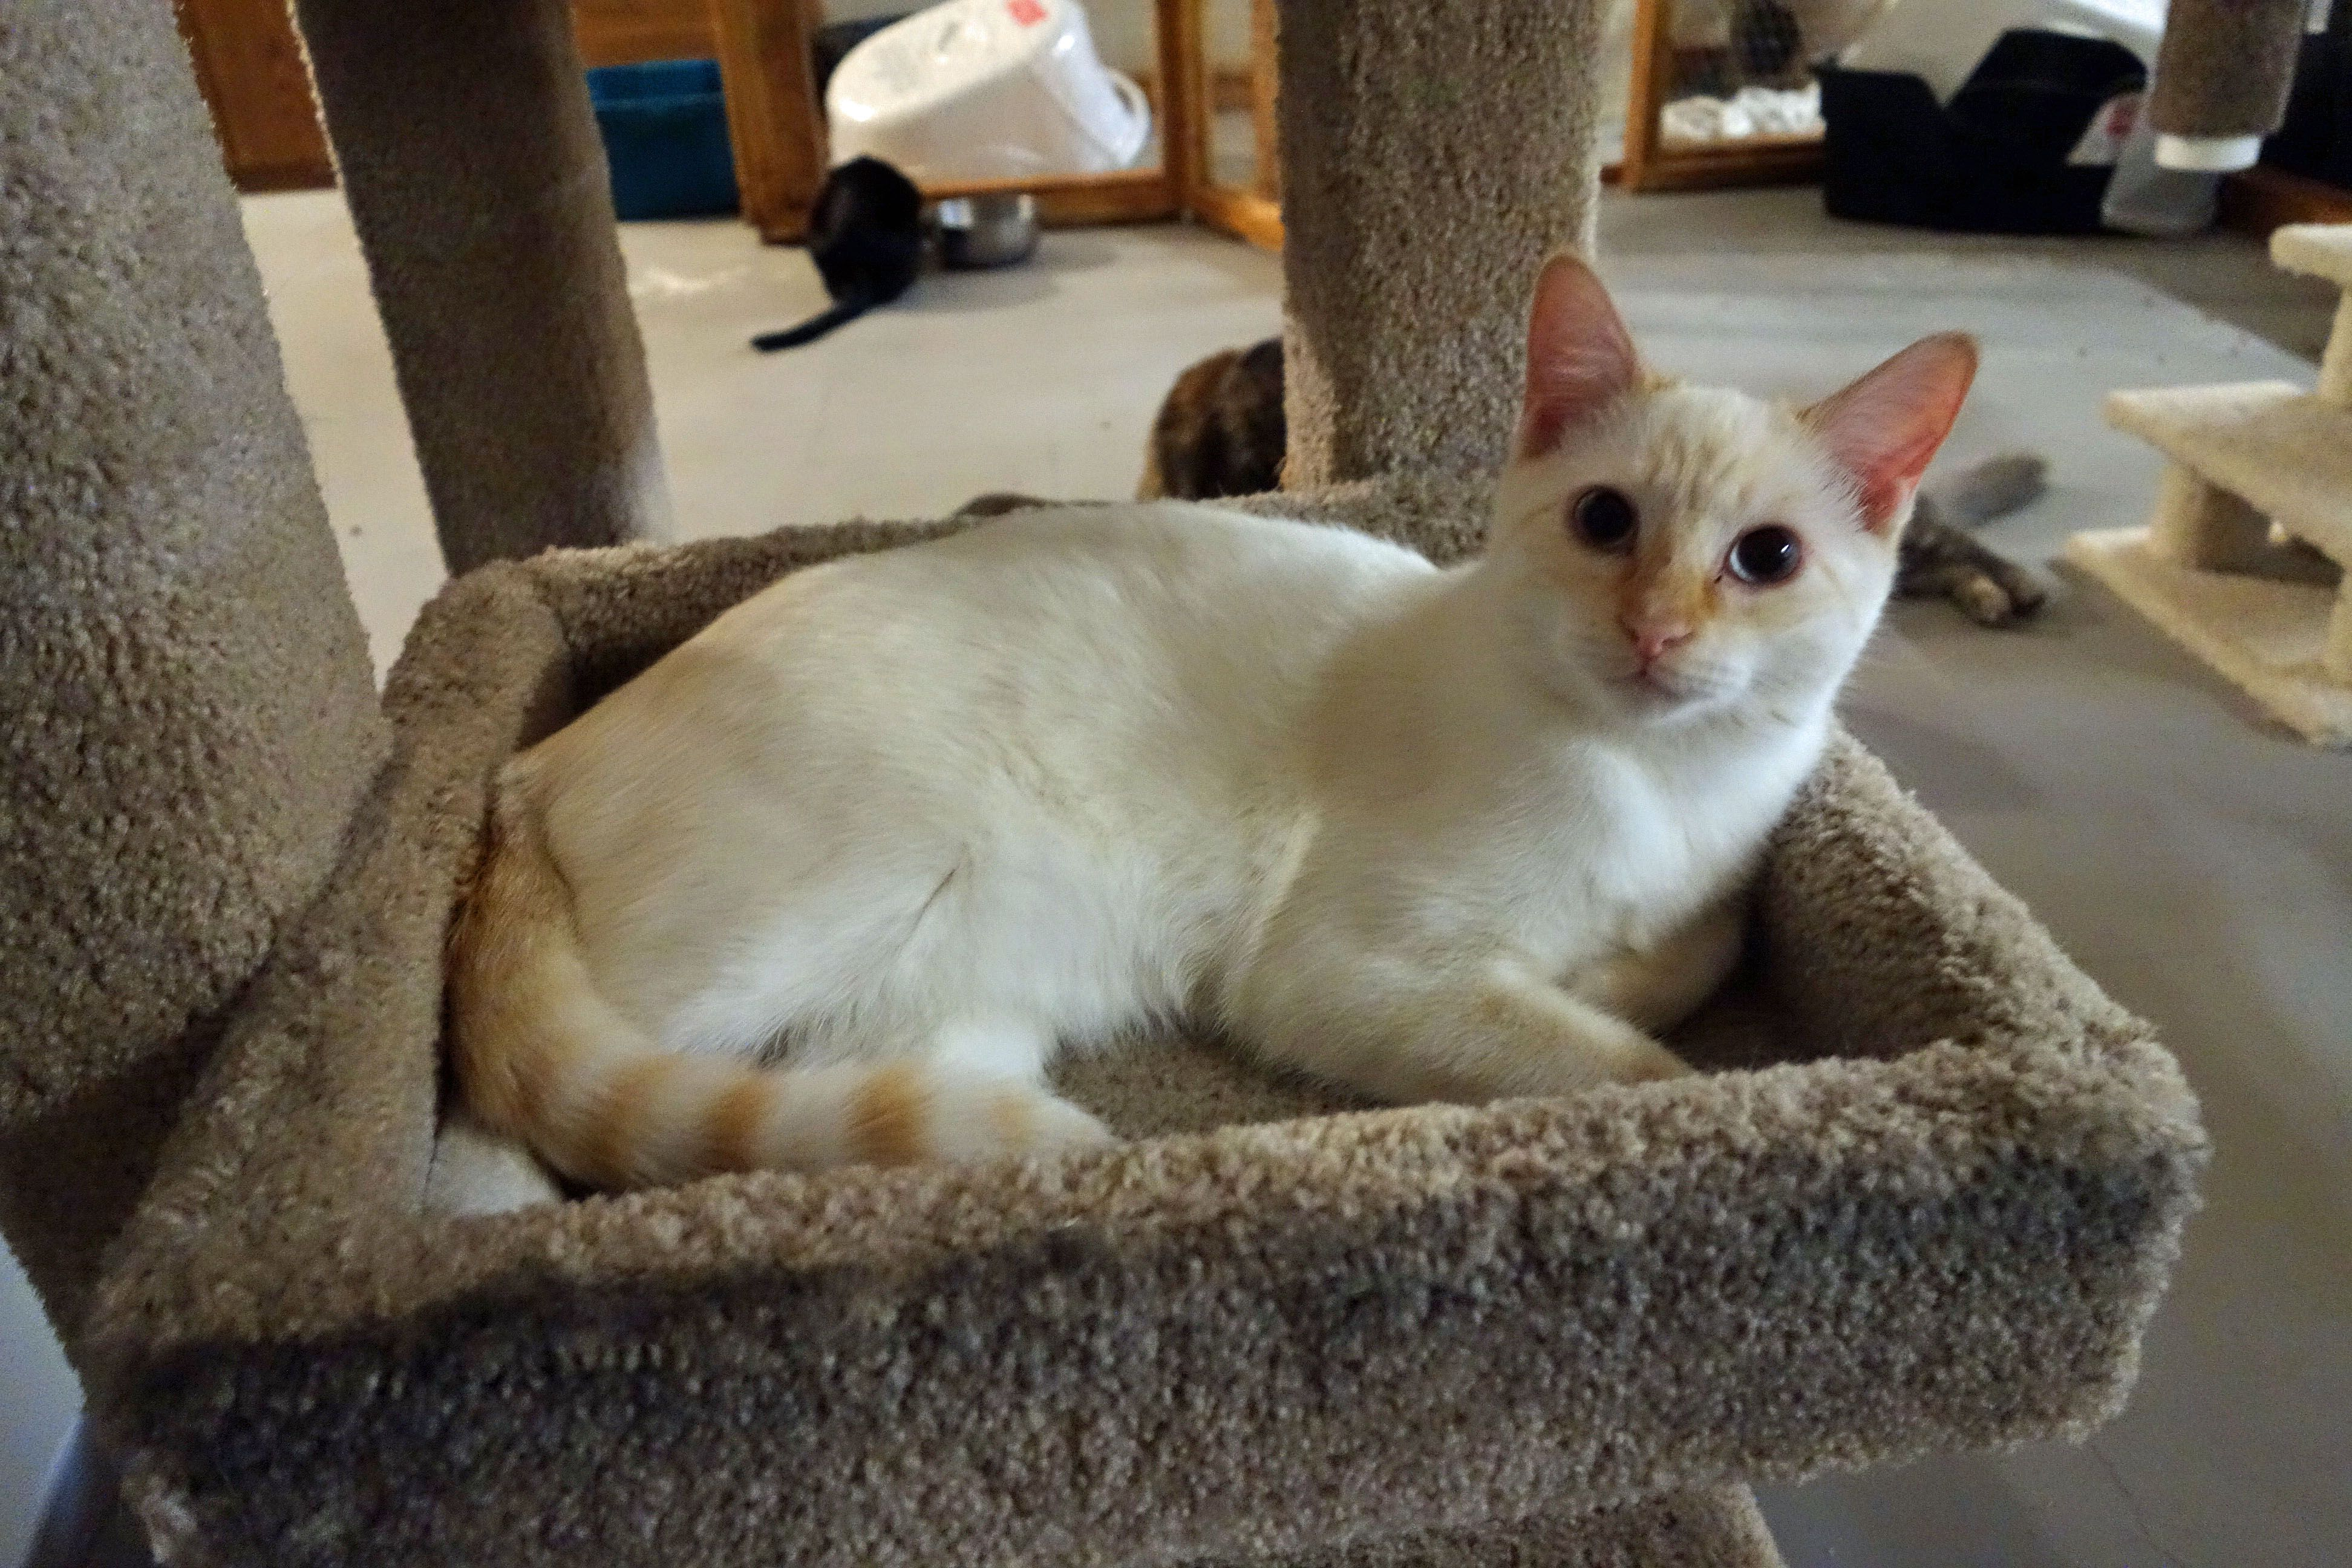 Adopt Me Pets Of The Week From Local Rescues And Shelters Pets Cute Cat Breeds Cute Animals